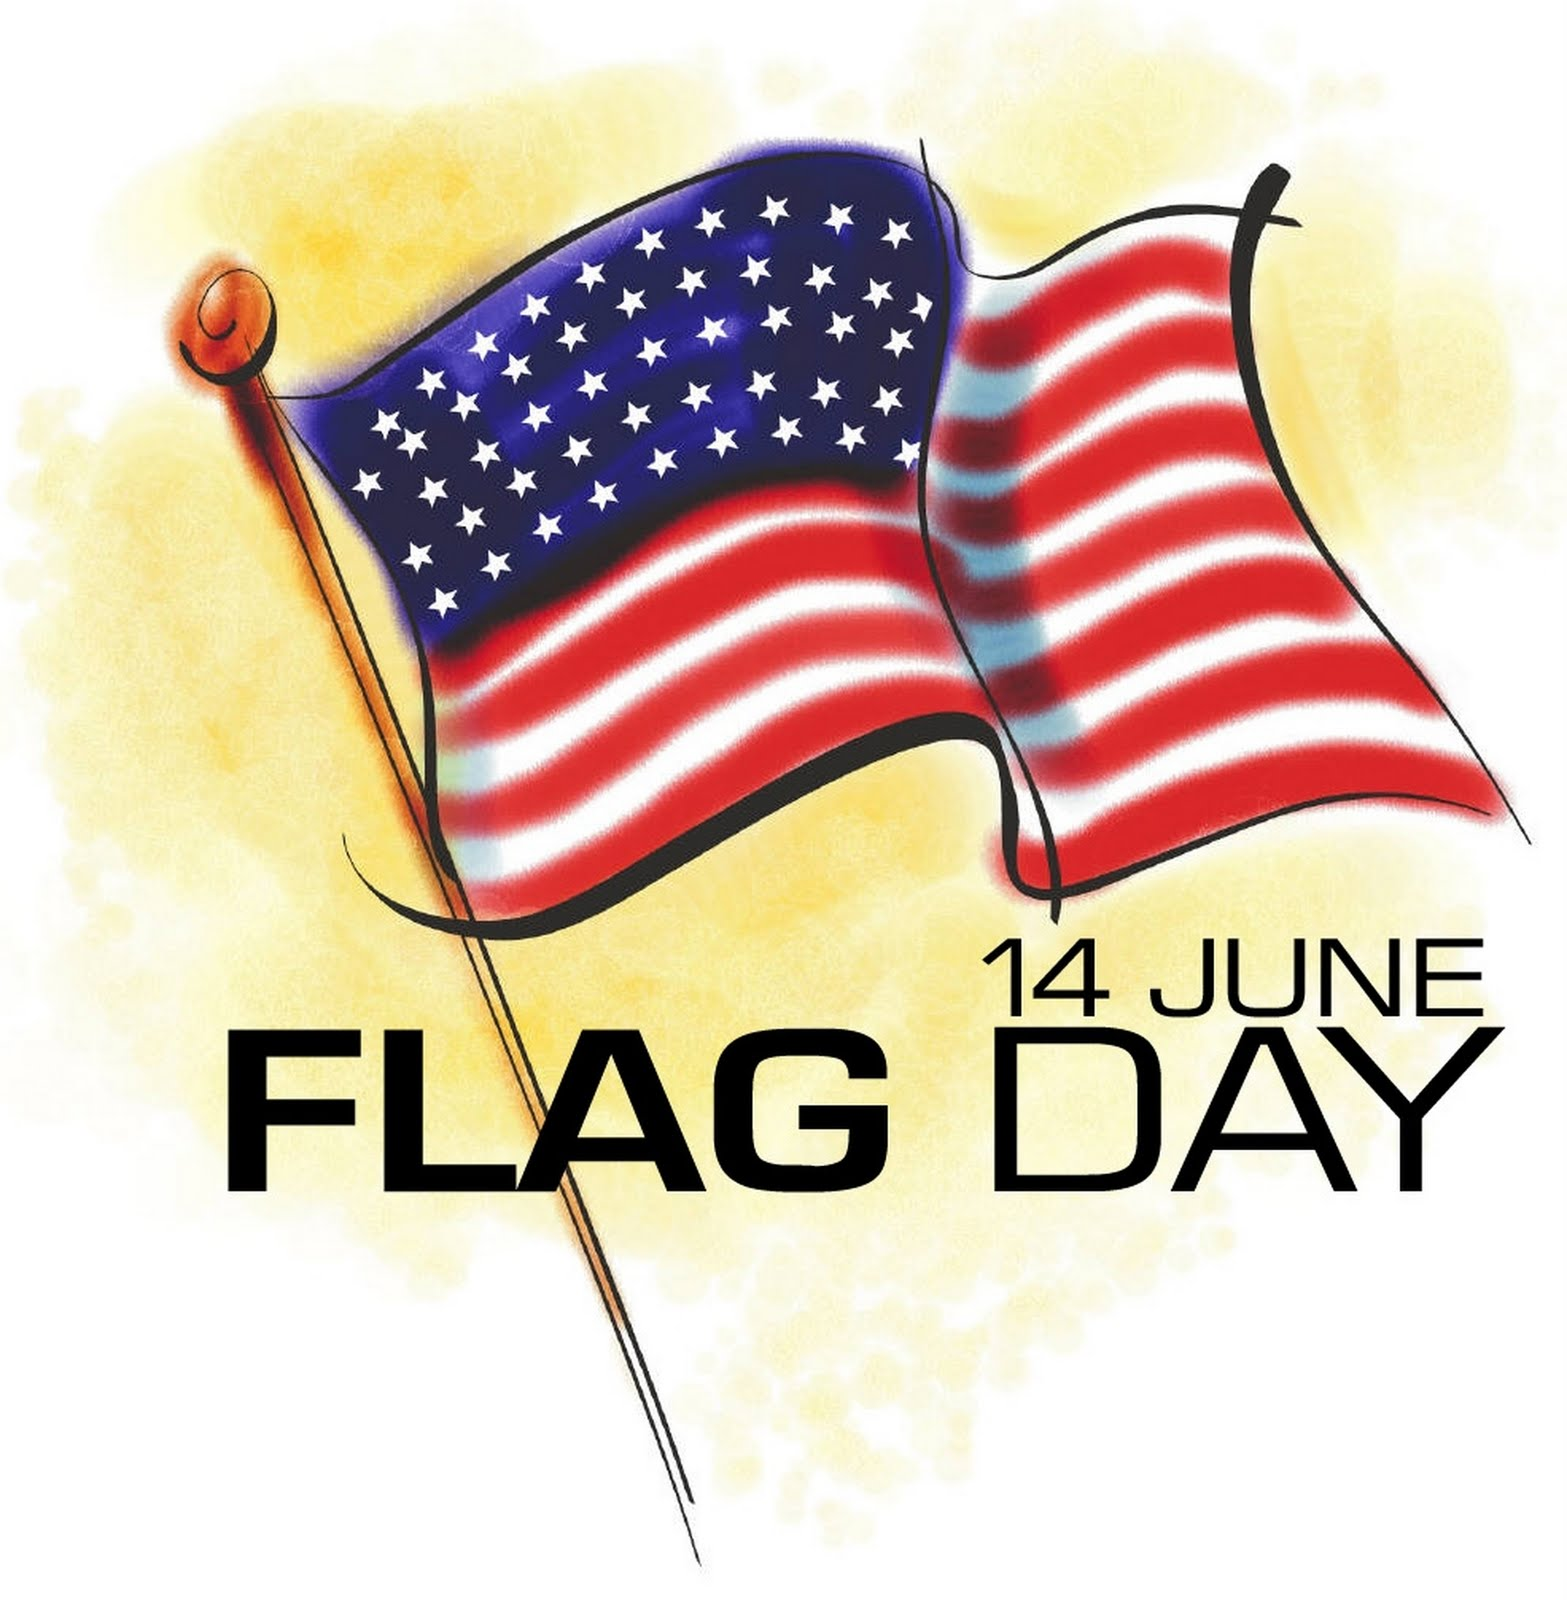 Happy Flag Day!!!